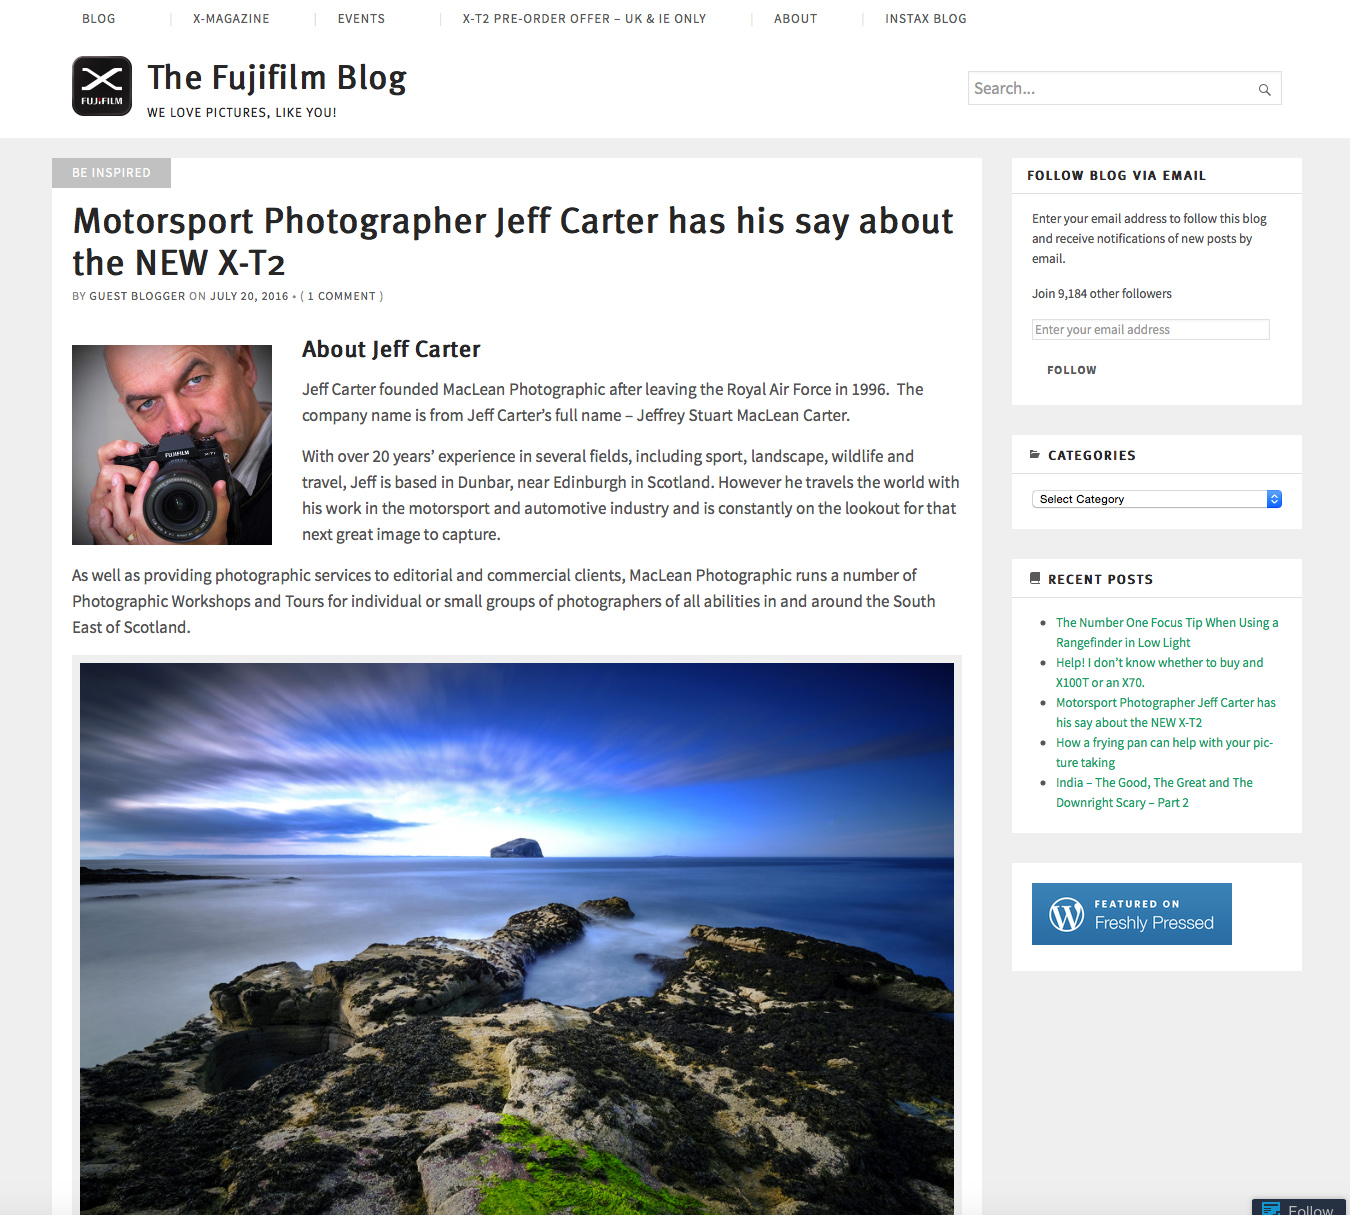 interviews online jeff carter fuji x adventure been two interviews maclean photographic s jeff carter posted online and he has also been featured in the latest edition of the fujilove emagazine